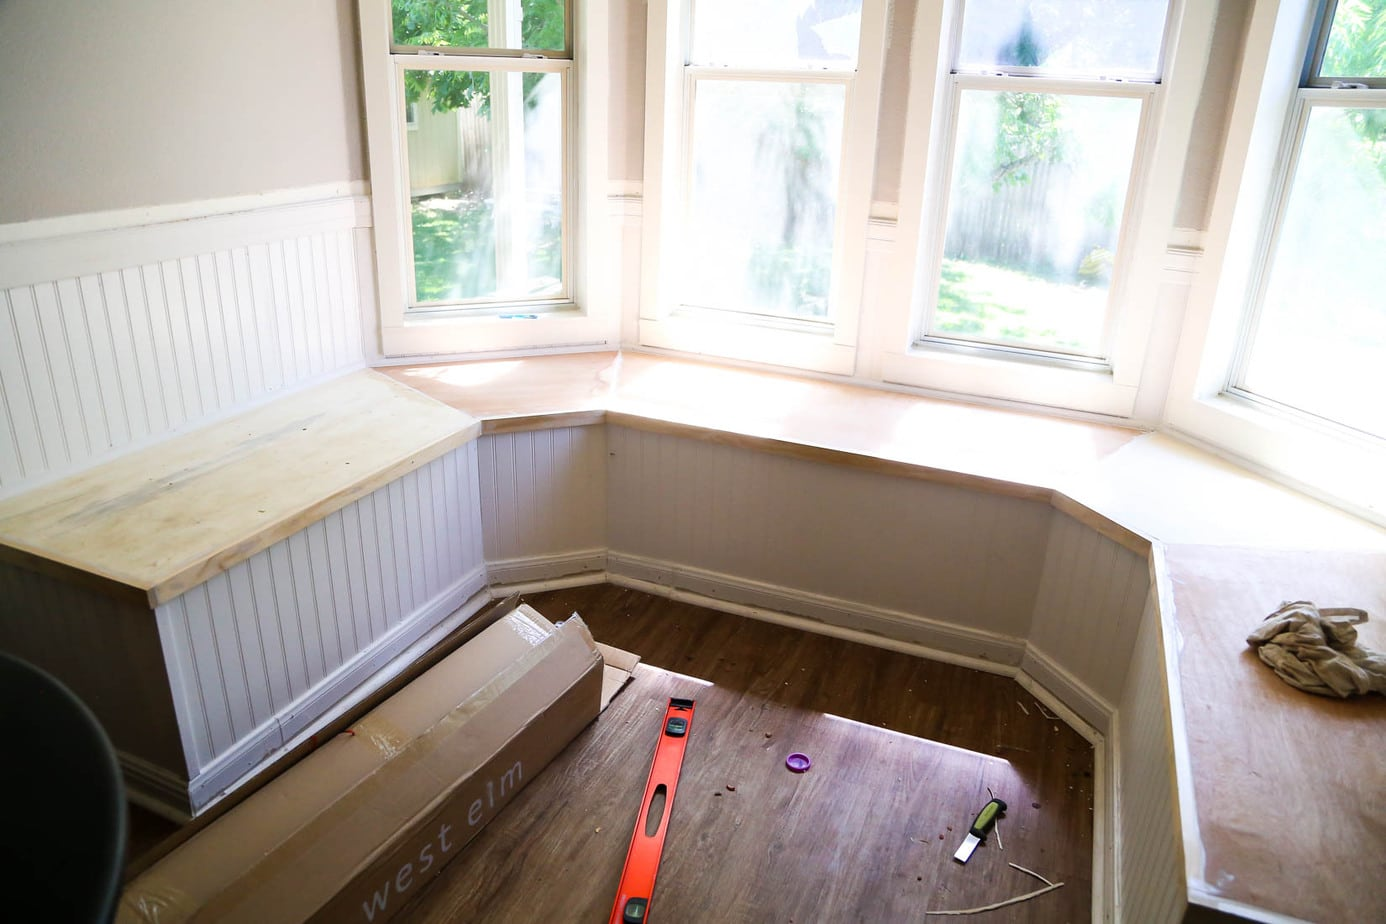 Image of bay window bench after being built, but before painting